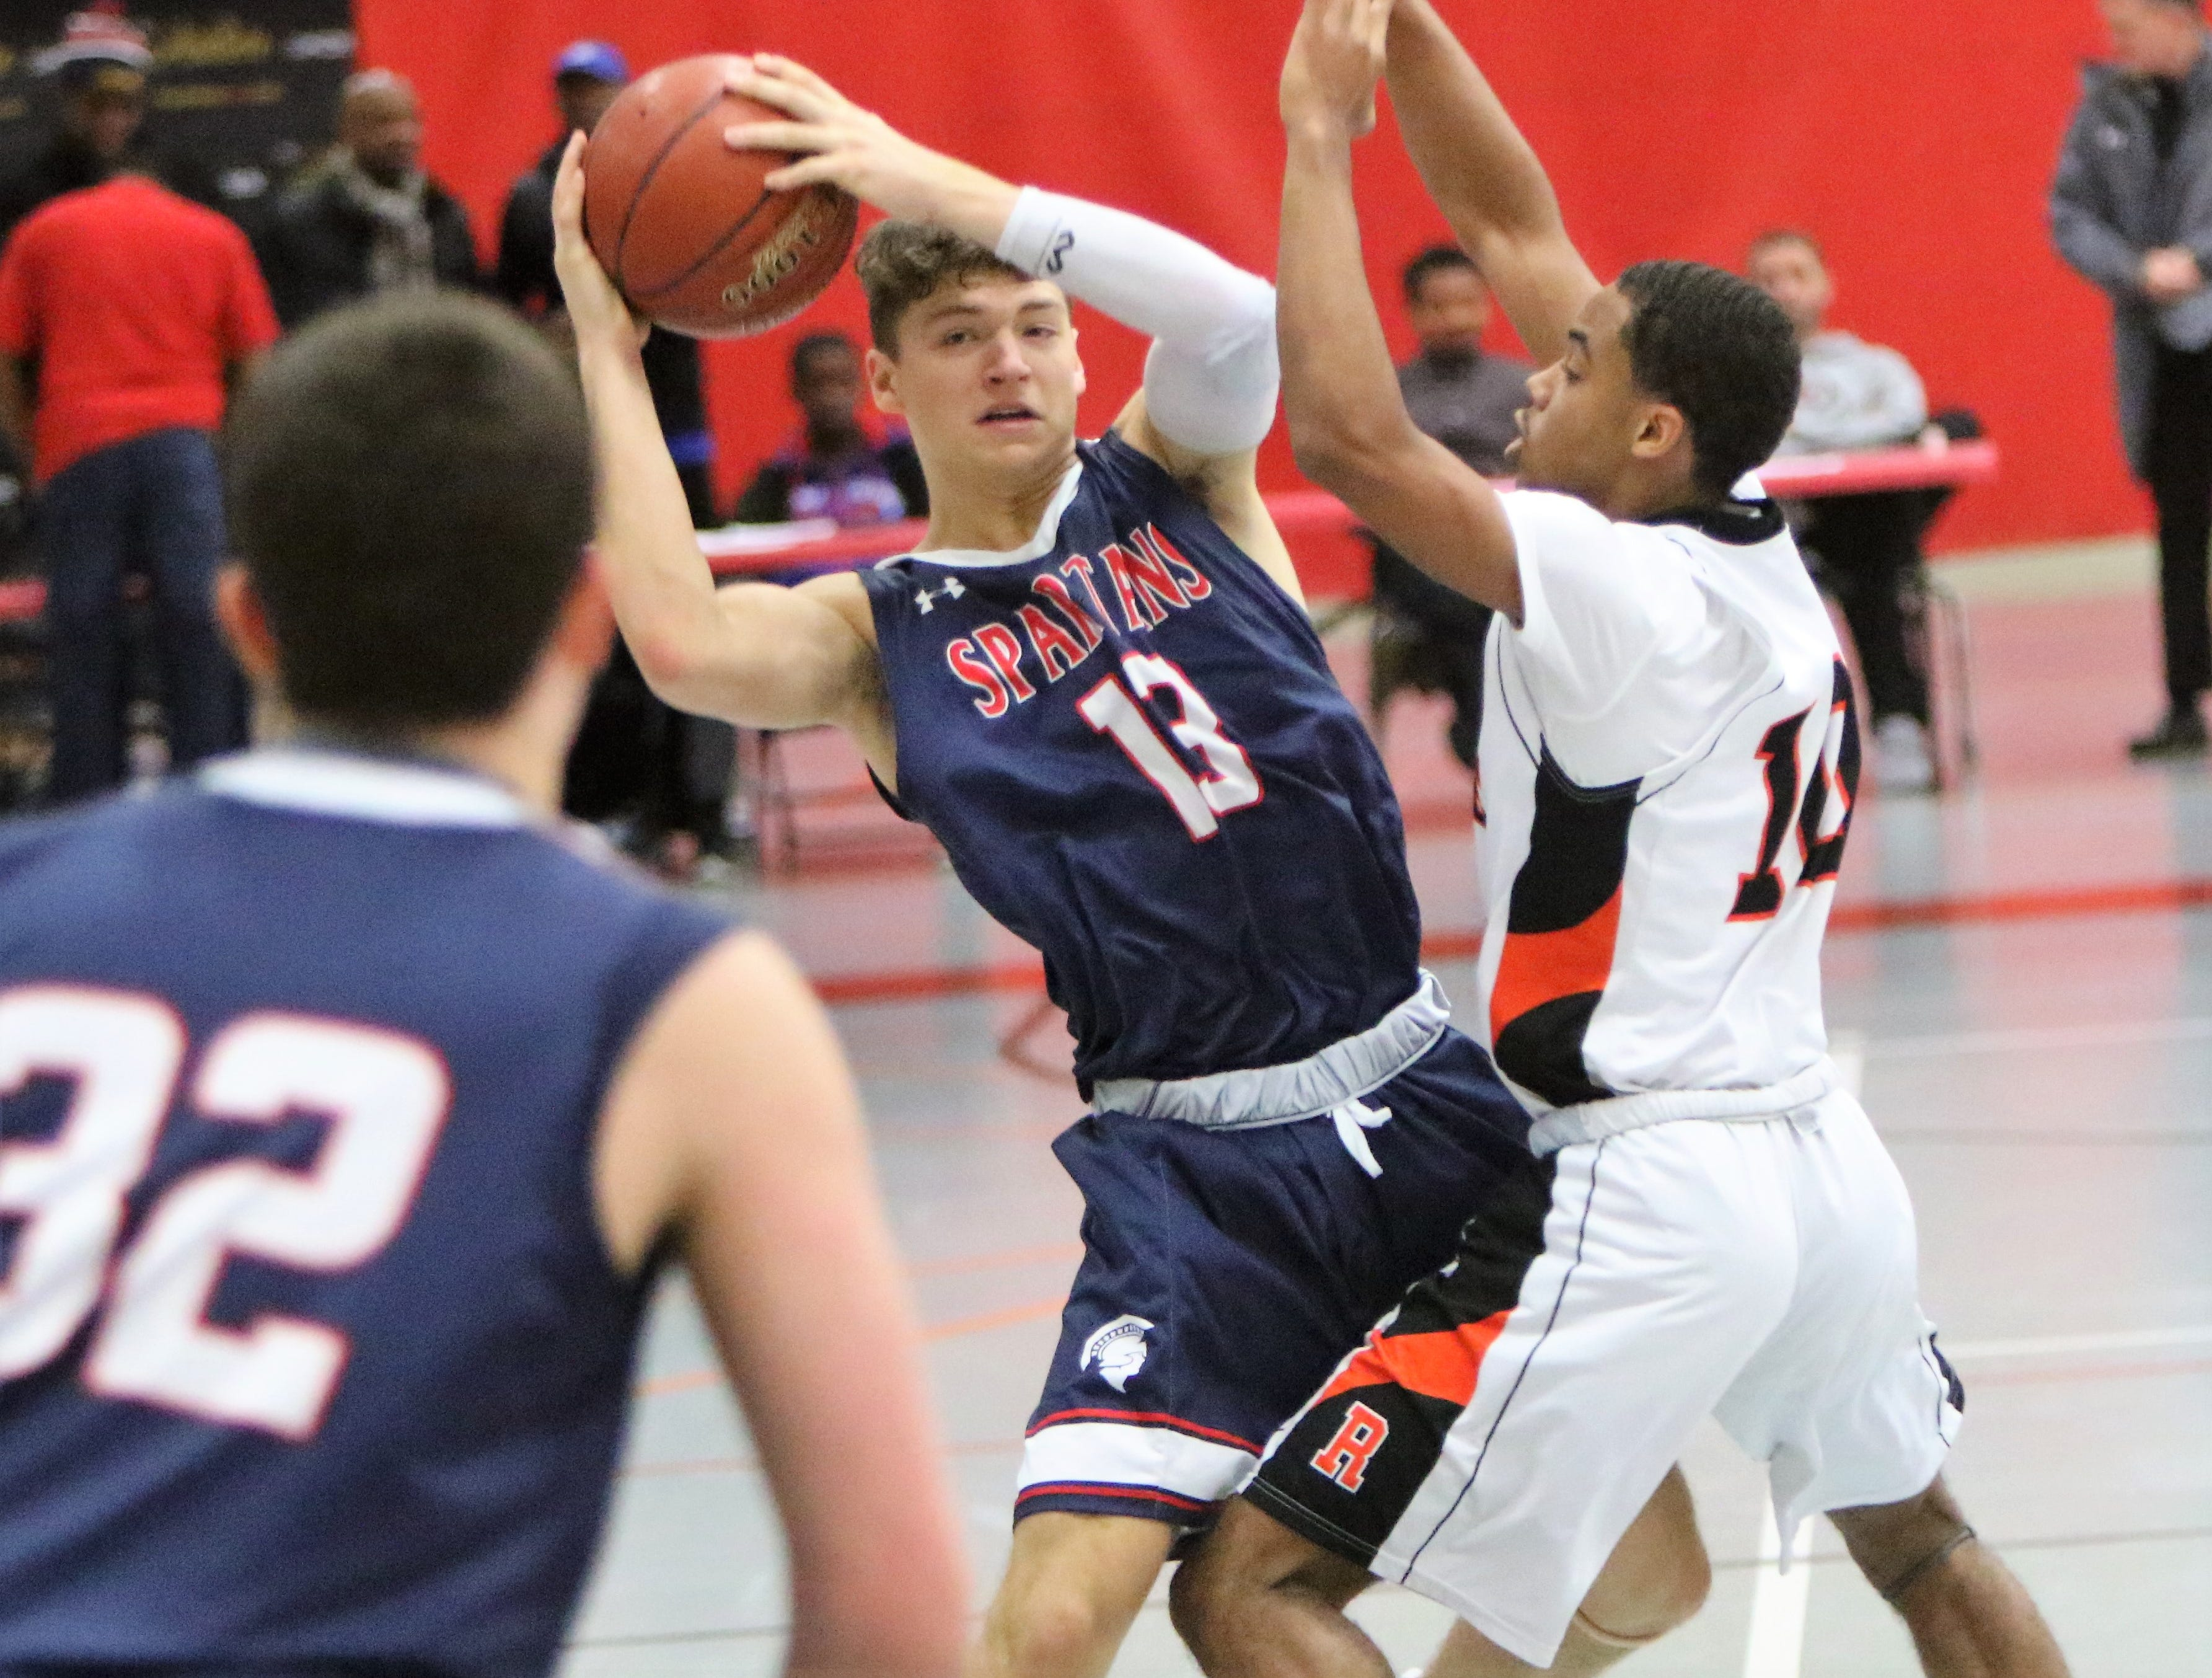 Brookfield East guard Thomas Francken looks for room to pass against Milwaukee Riverside during the Terry Porter Classic on Saturday.